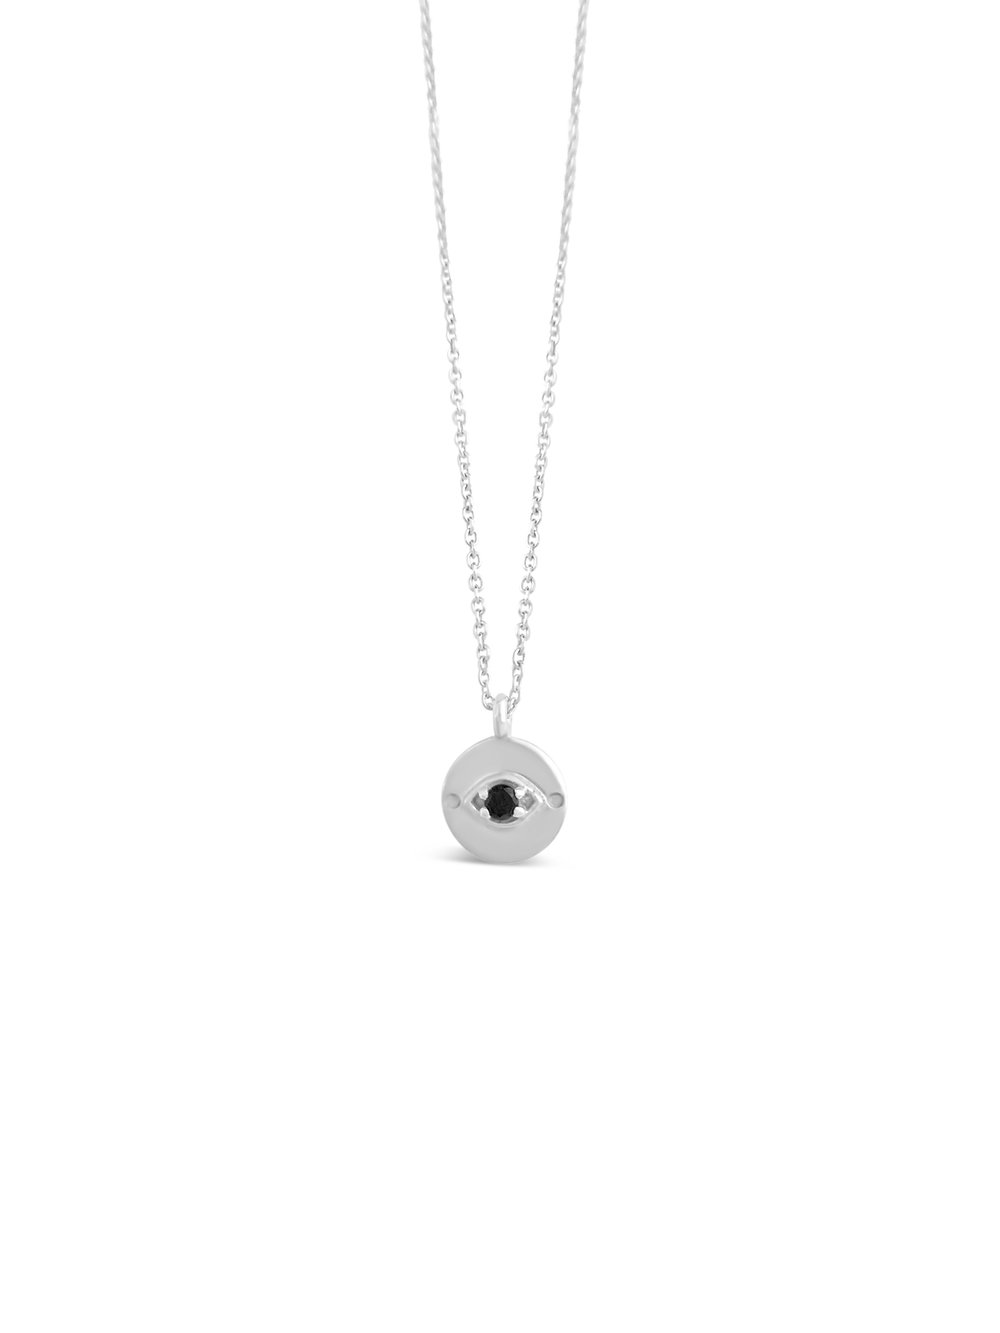 Evil Eye Necklace: $159